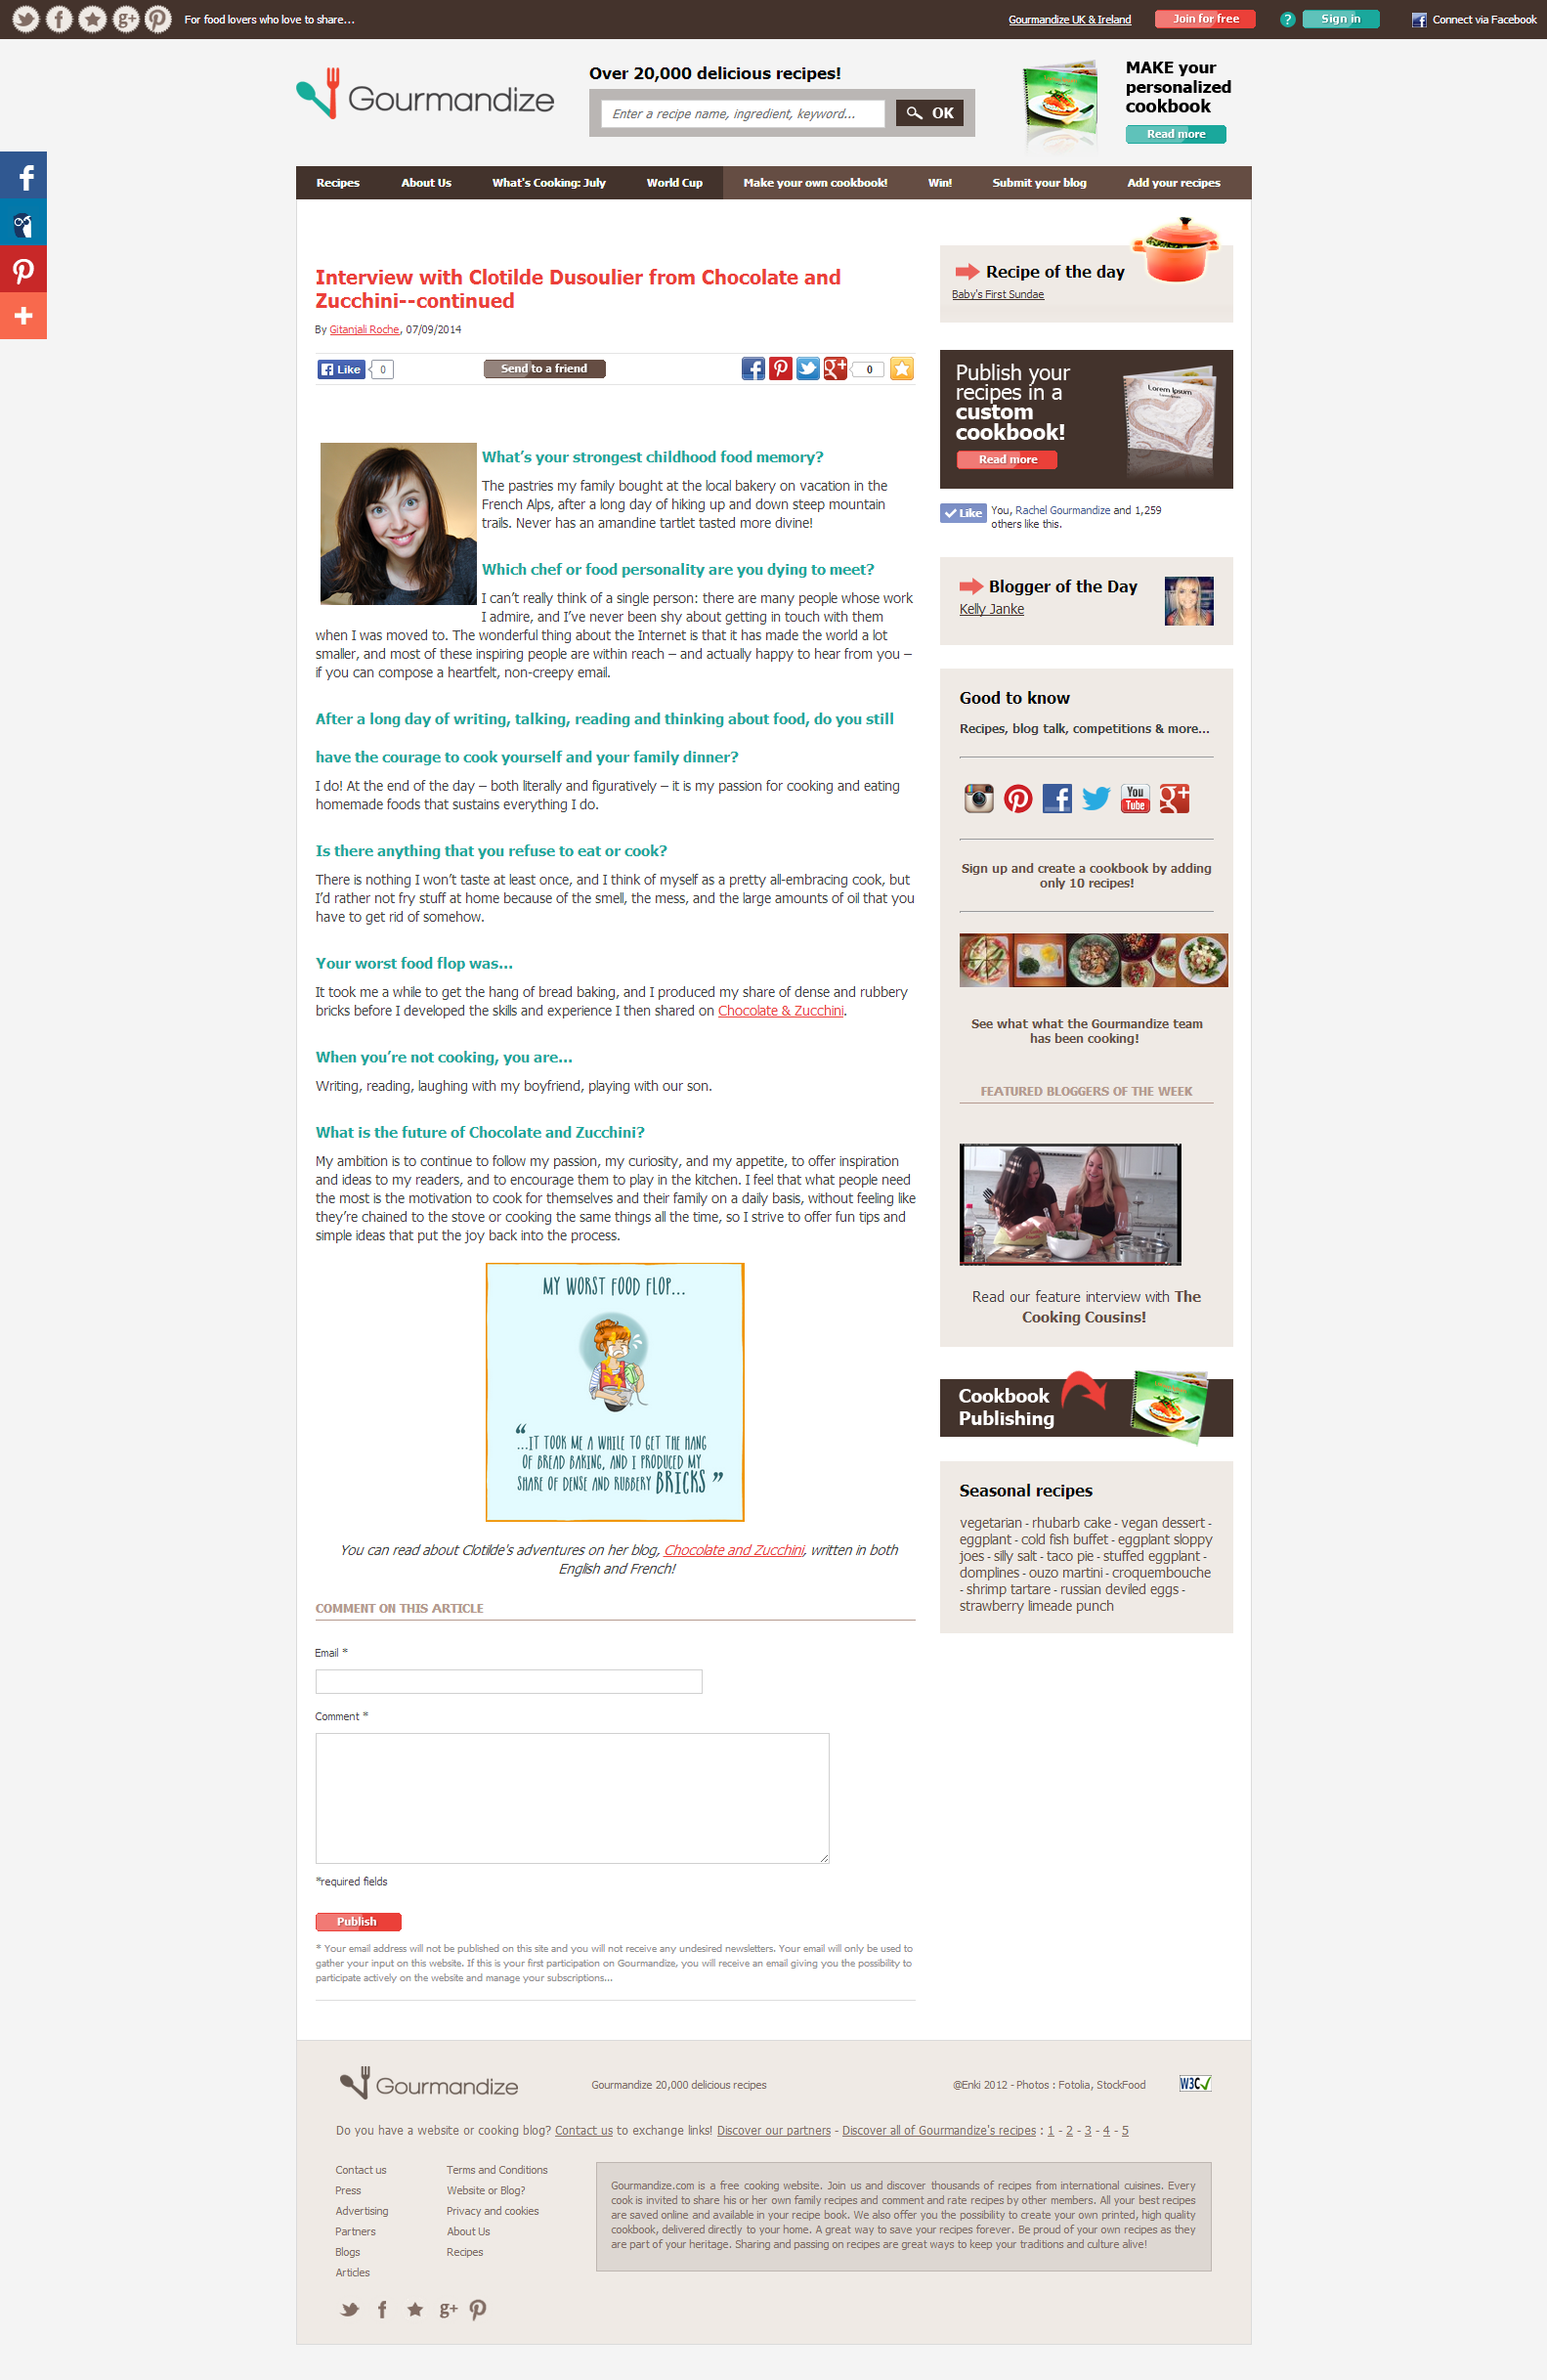 Interview with Clotilde Dusoulier from Chocolate and Zucchini continued